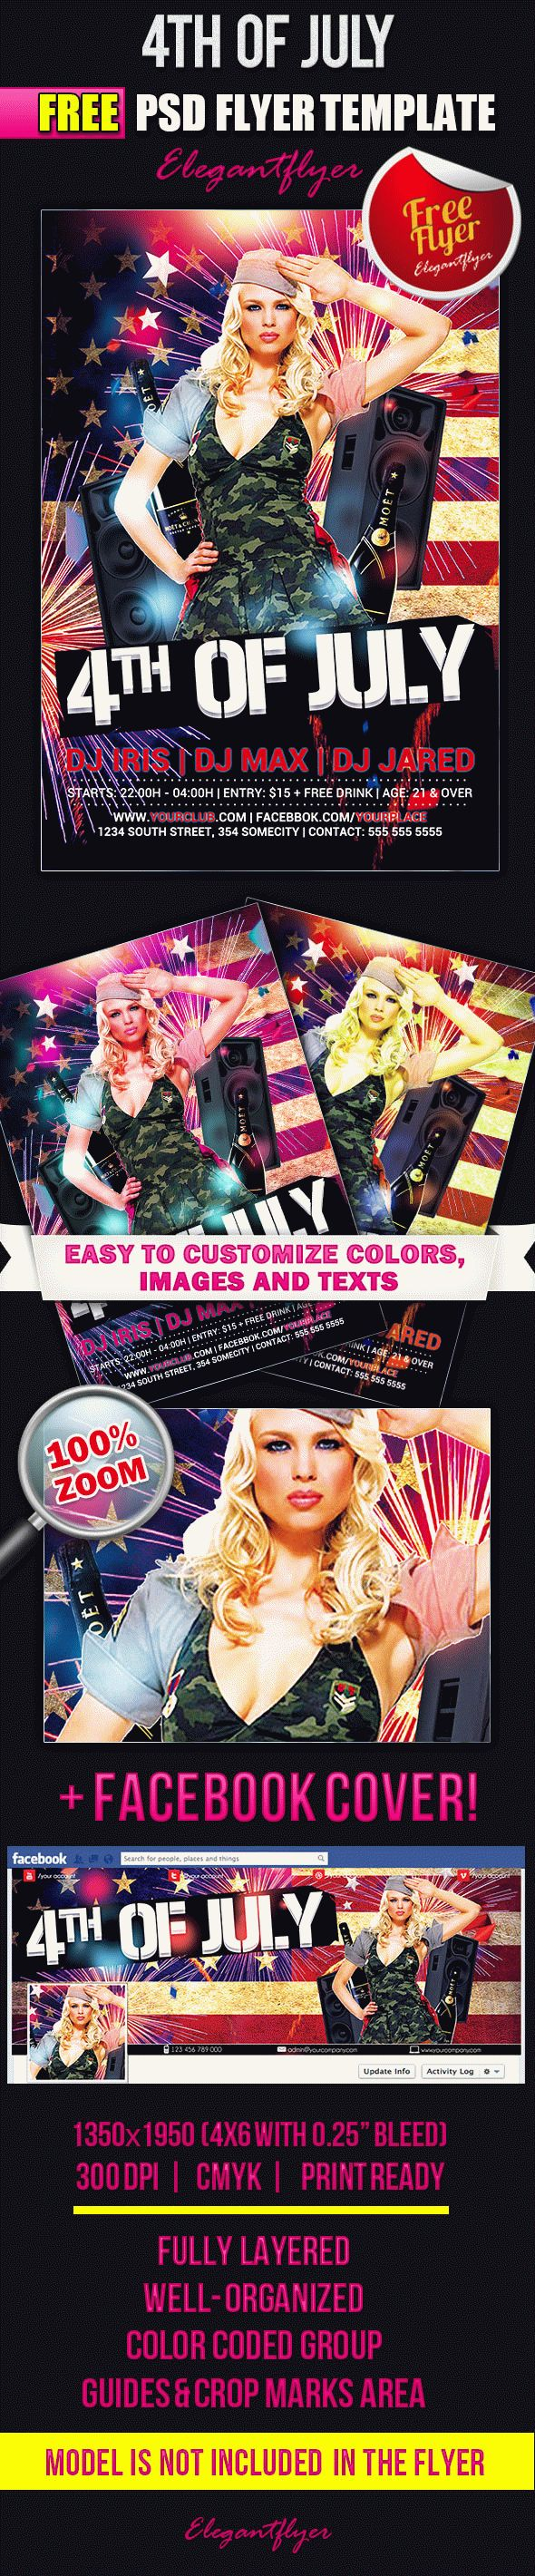 Happy 4th of July Sexy Free PSD Template